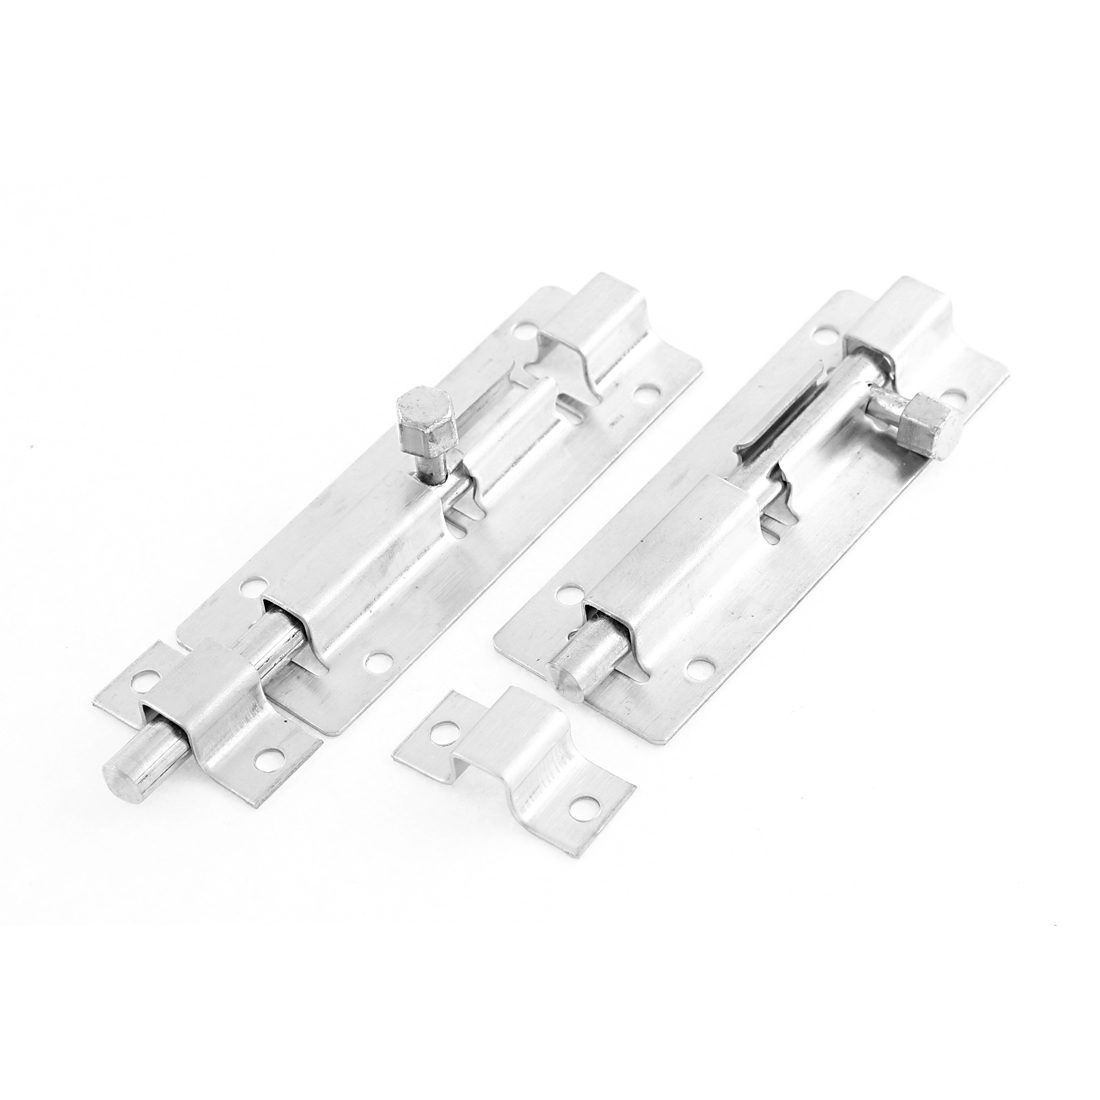 "Gate Lock Safety Stainless Steel Door Latch Barrel Bolt Hasp Stapler 4"" Length 2pcs"